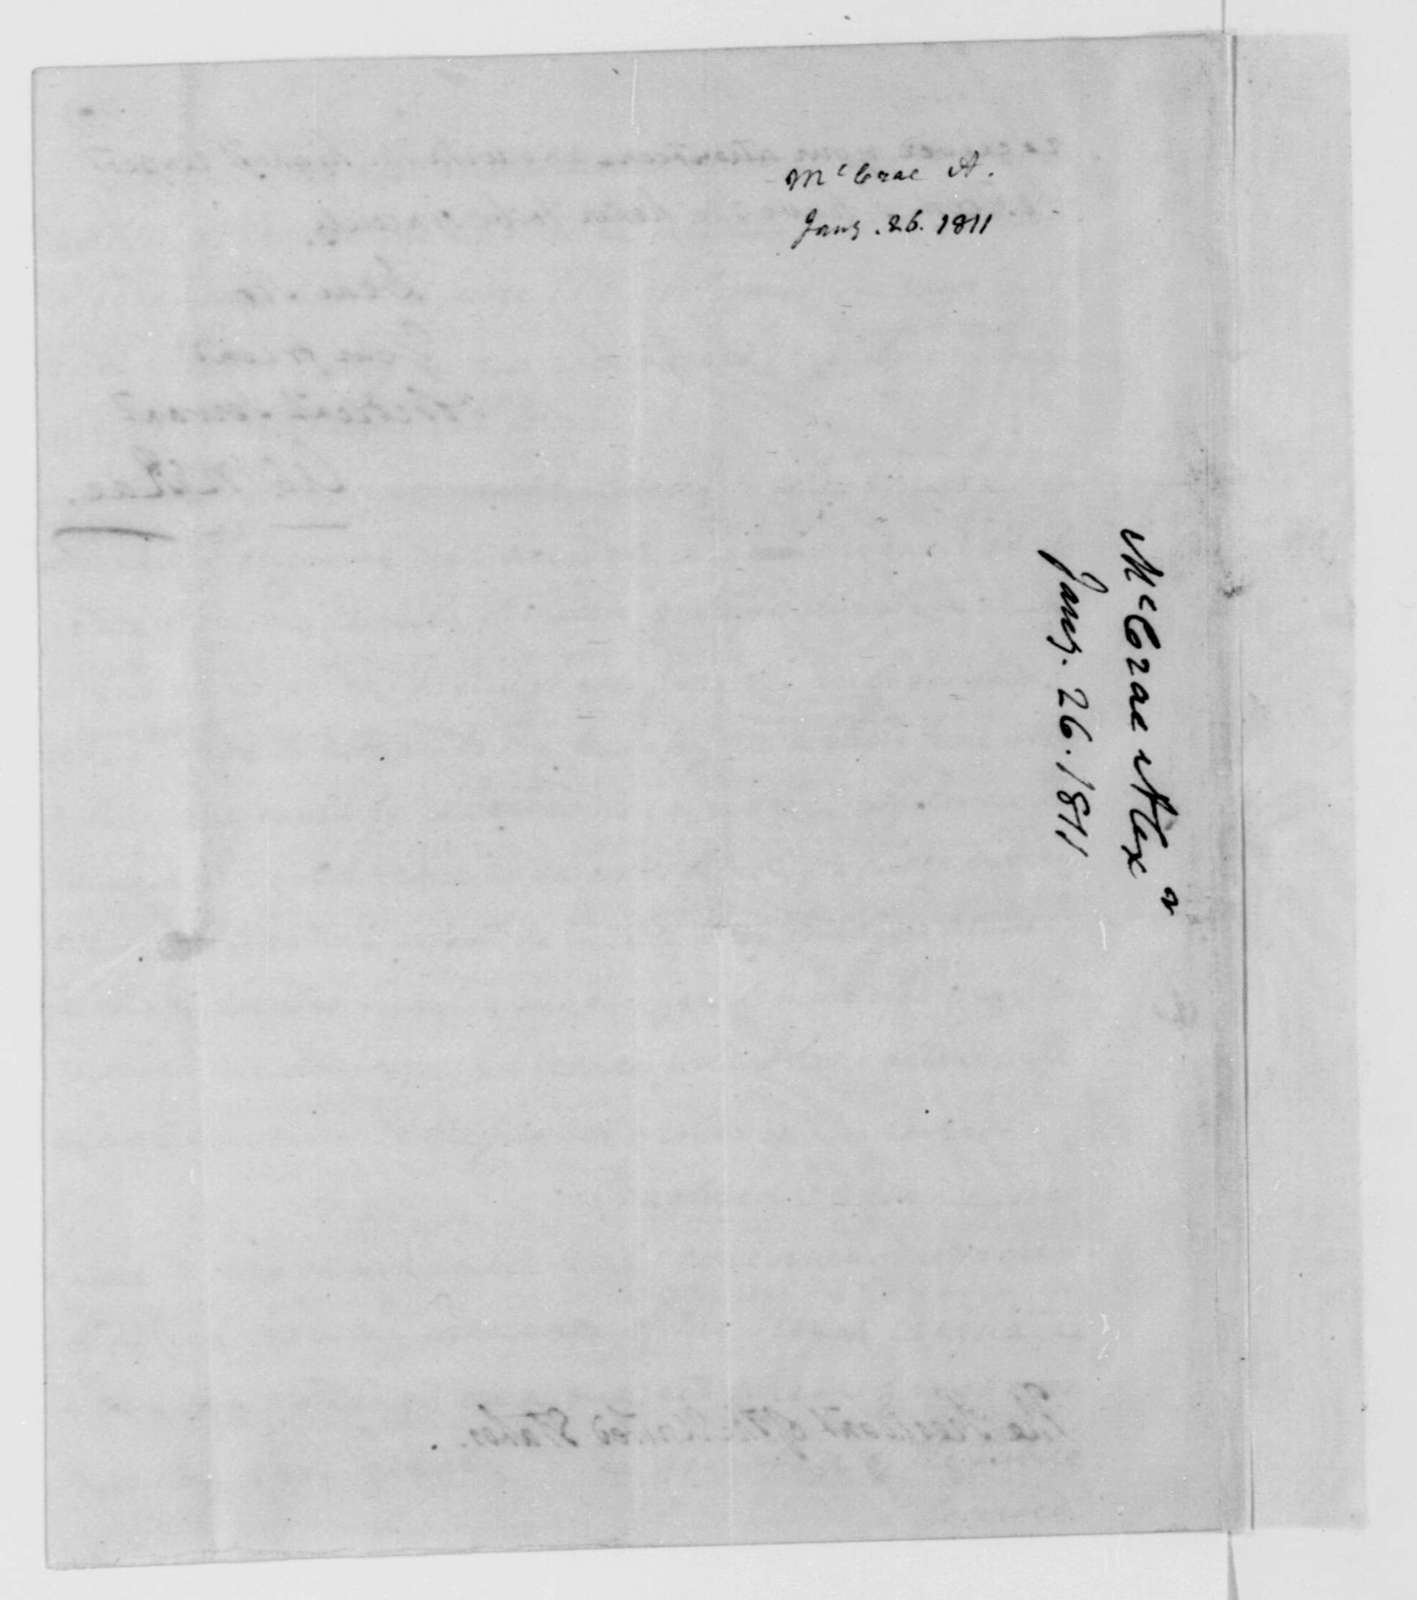 A. McRae to James Madison, January 26, 1811.